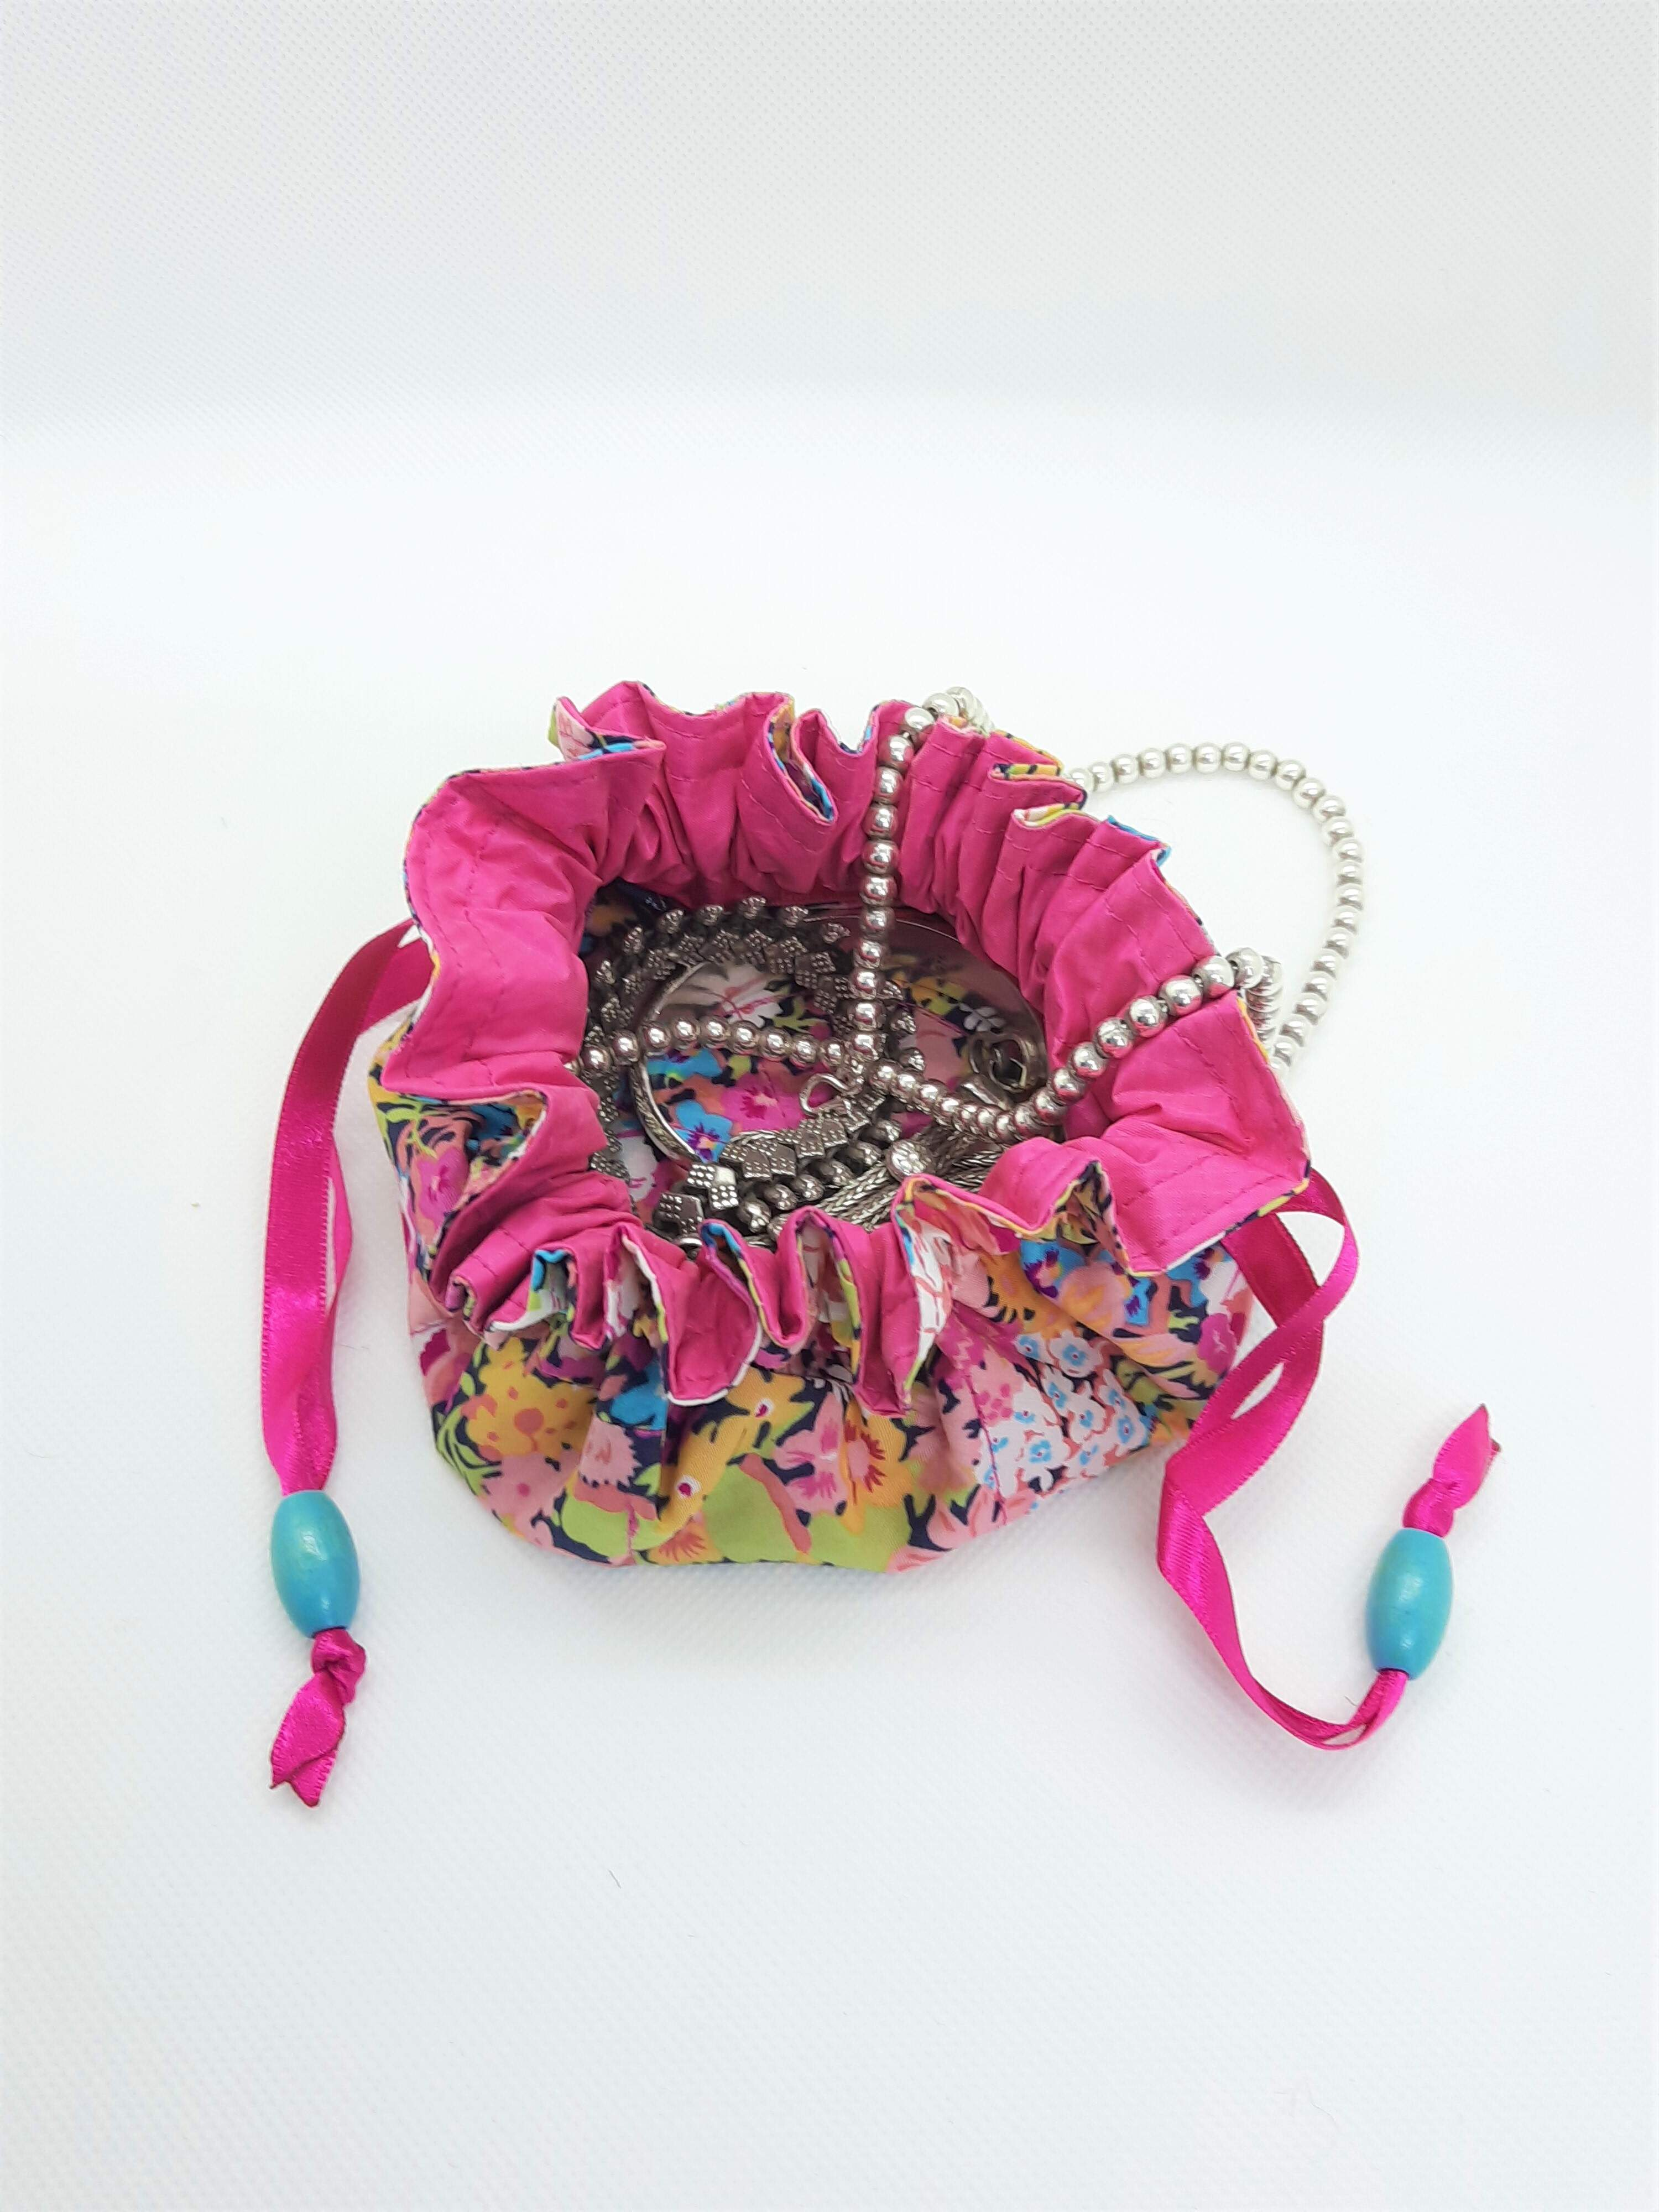 Jewellery Pouch in action!